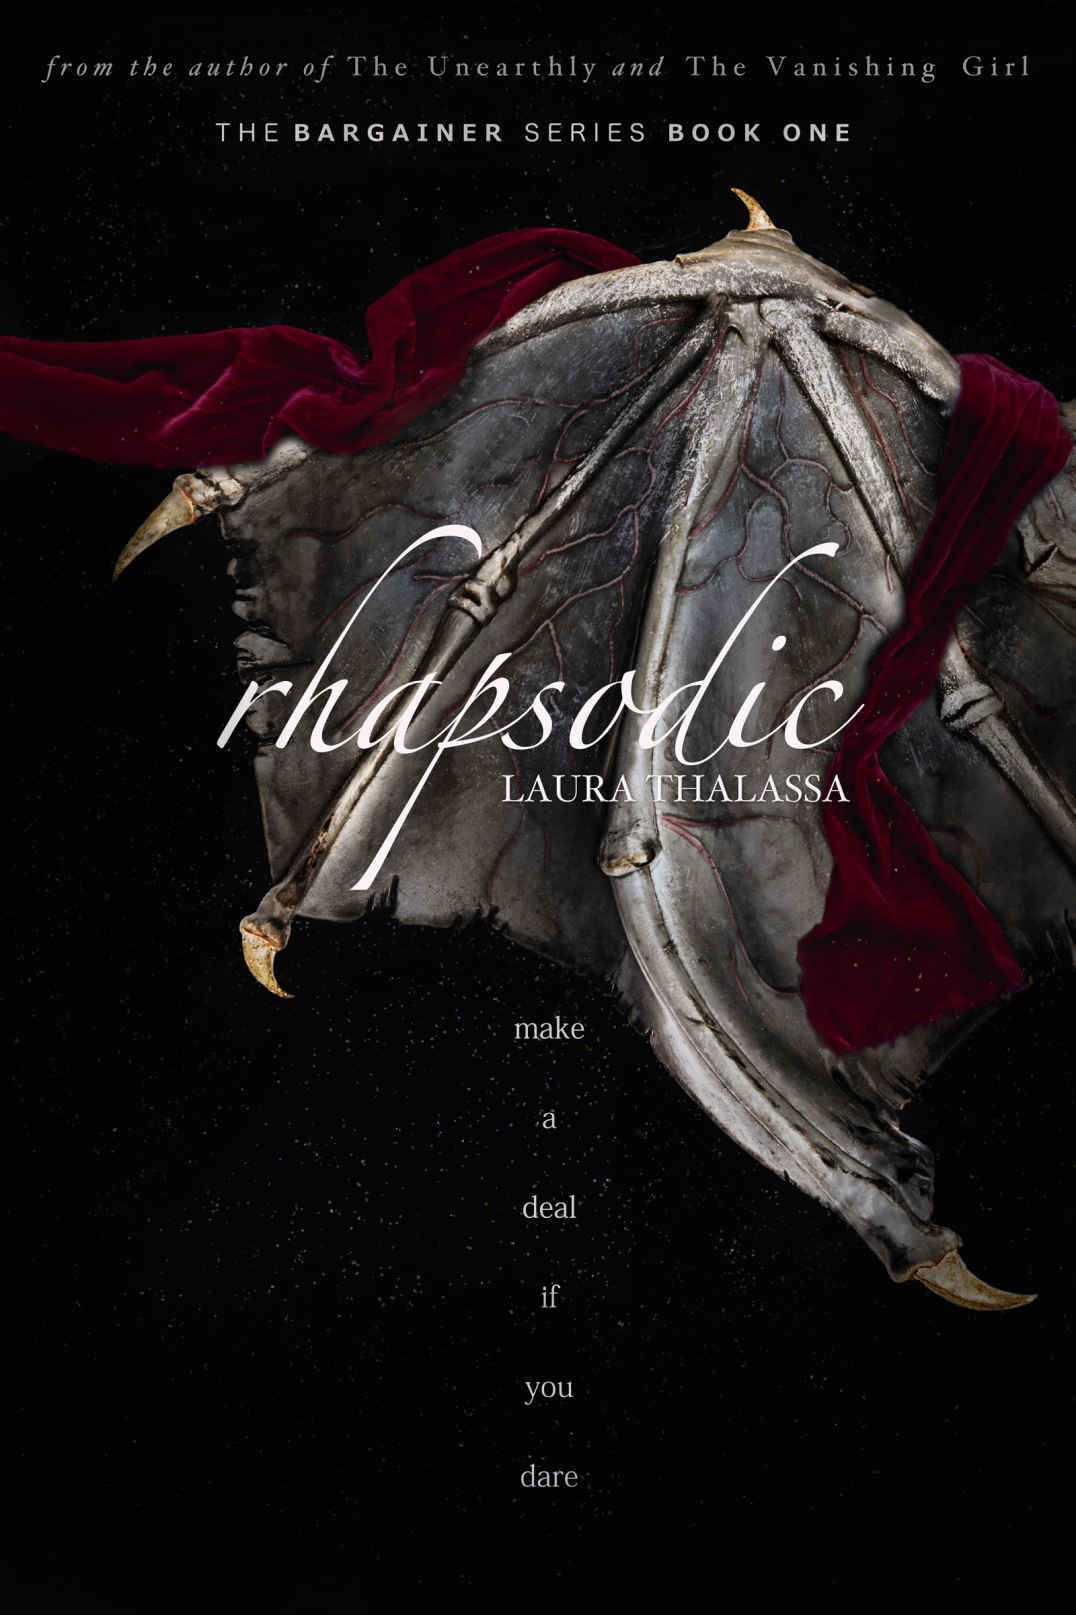 Rhapsodic (the Bargainer Book 1) (english Edition) Ebook: Laura Thalassa: